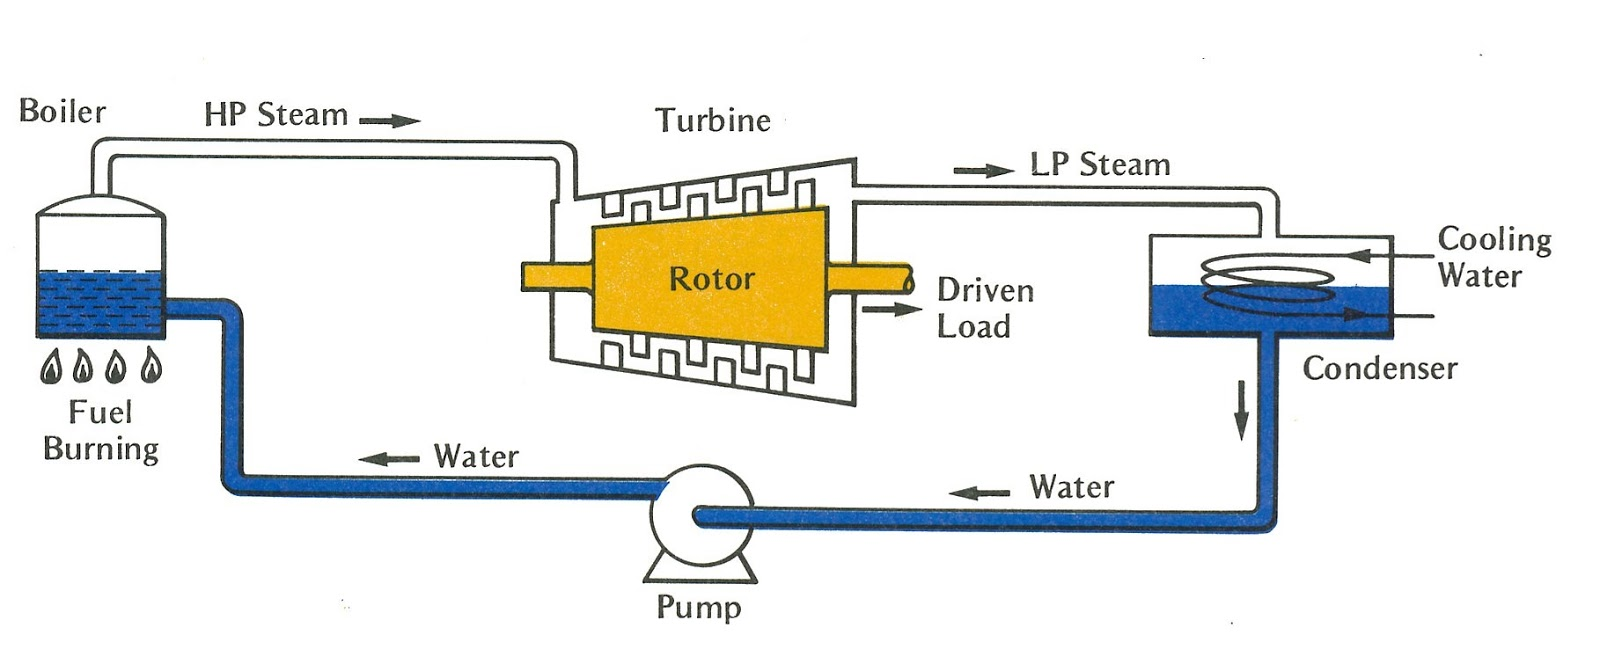 Pretty principle of operation of steam turbine pictures engineering photosvideos and articels engineering search engine biocorpaavc